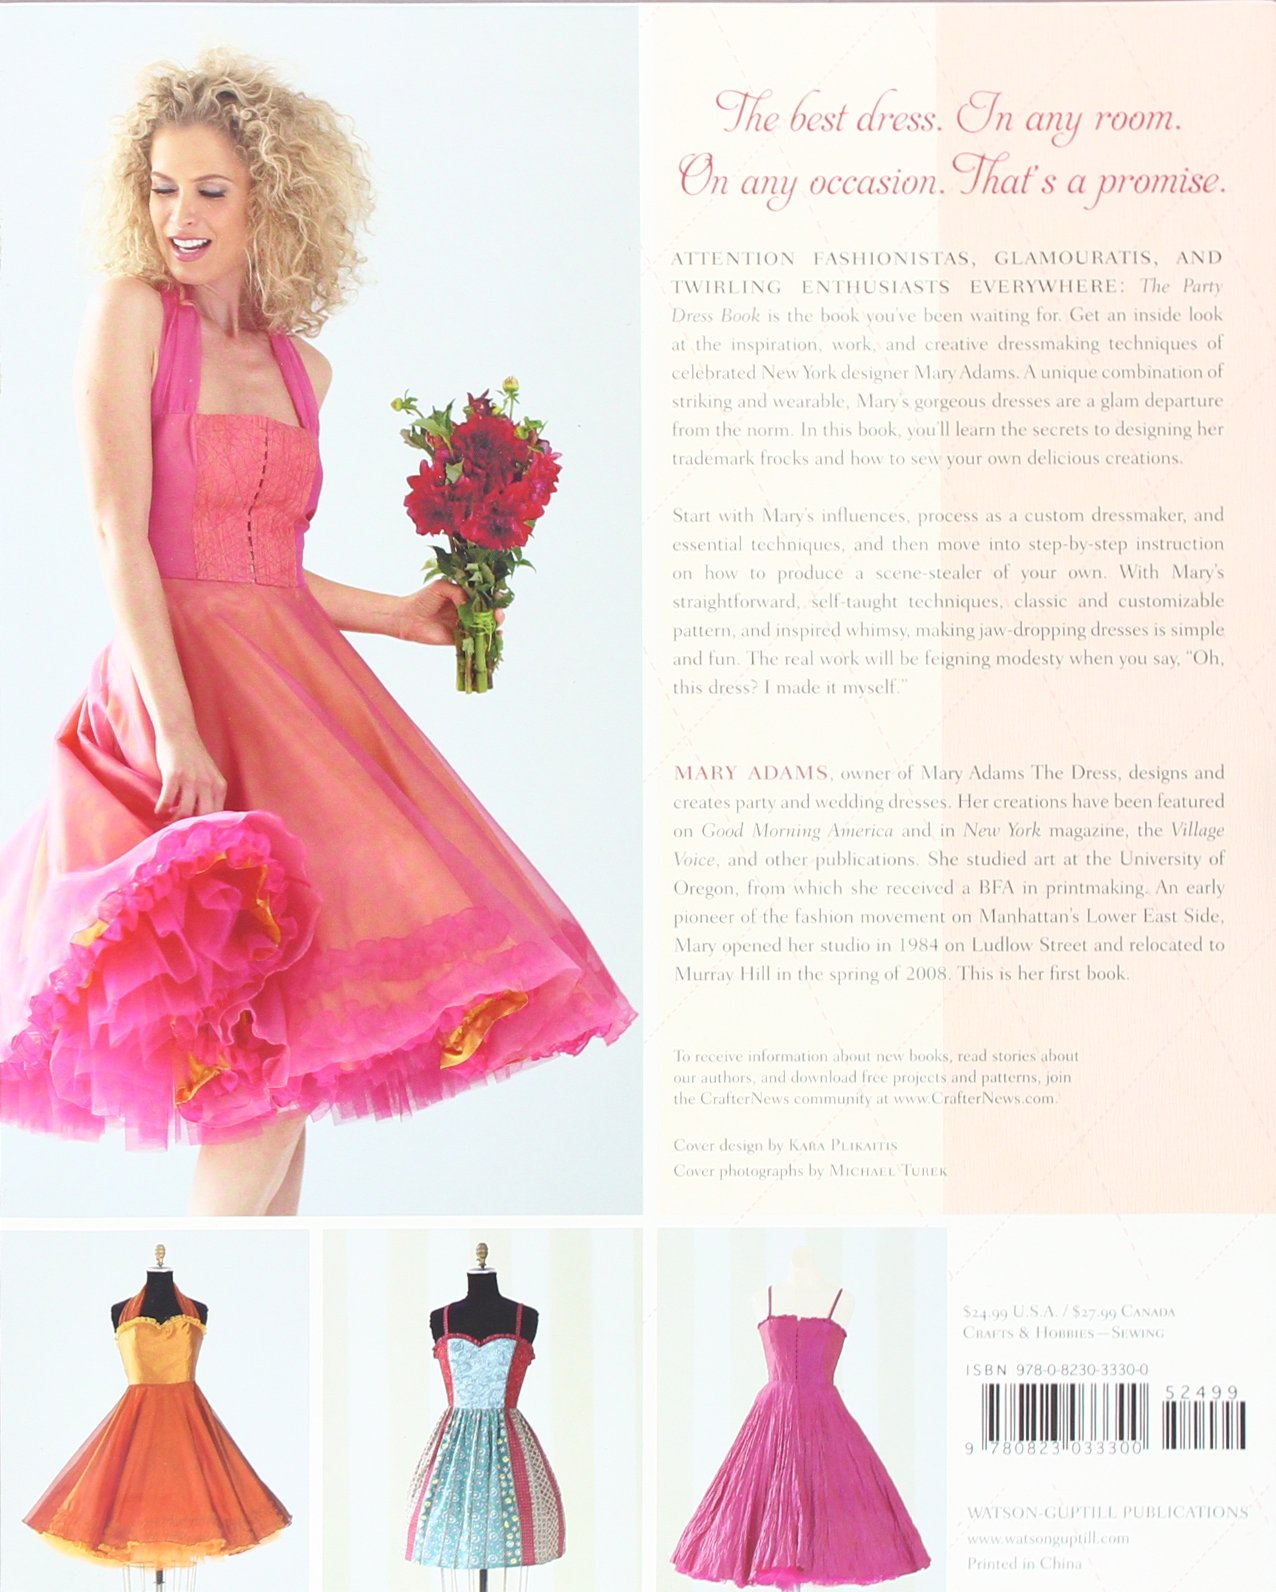 the party dress book how to sew the best dress in the room mary